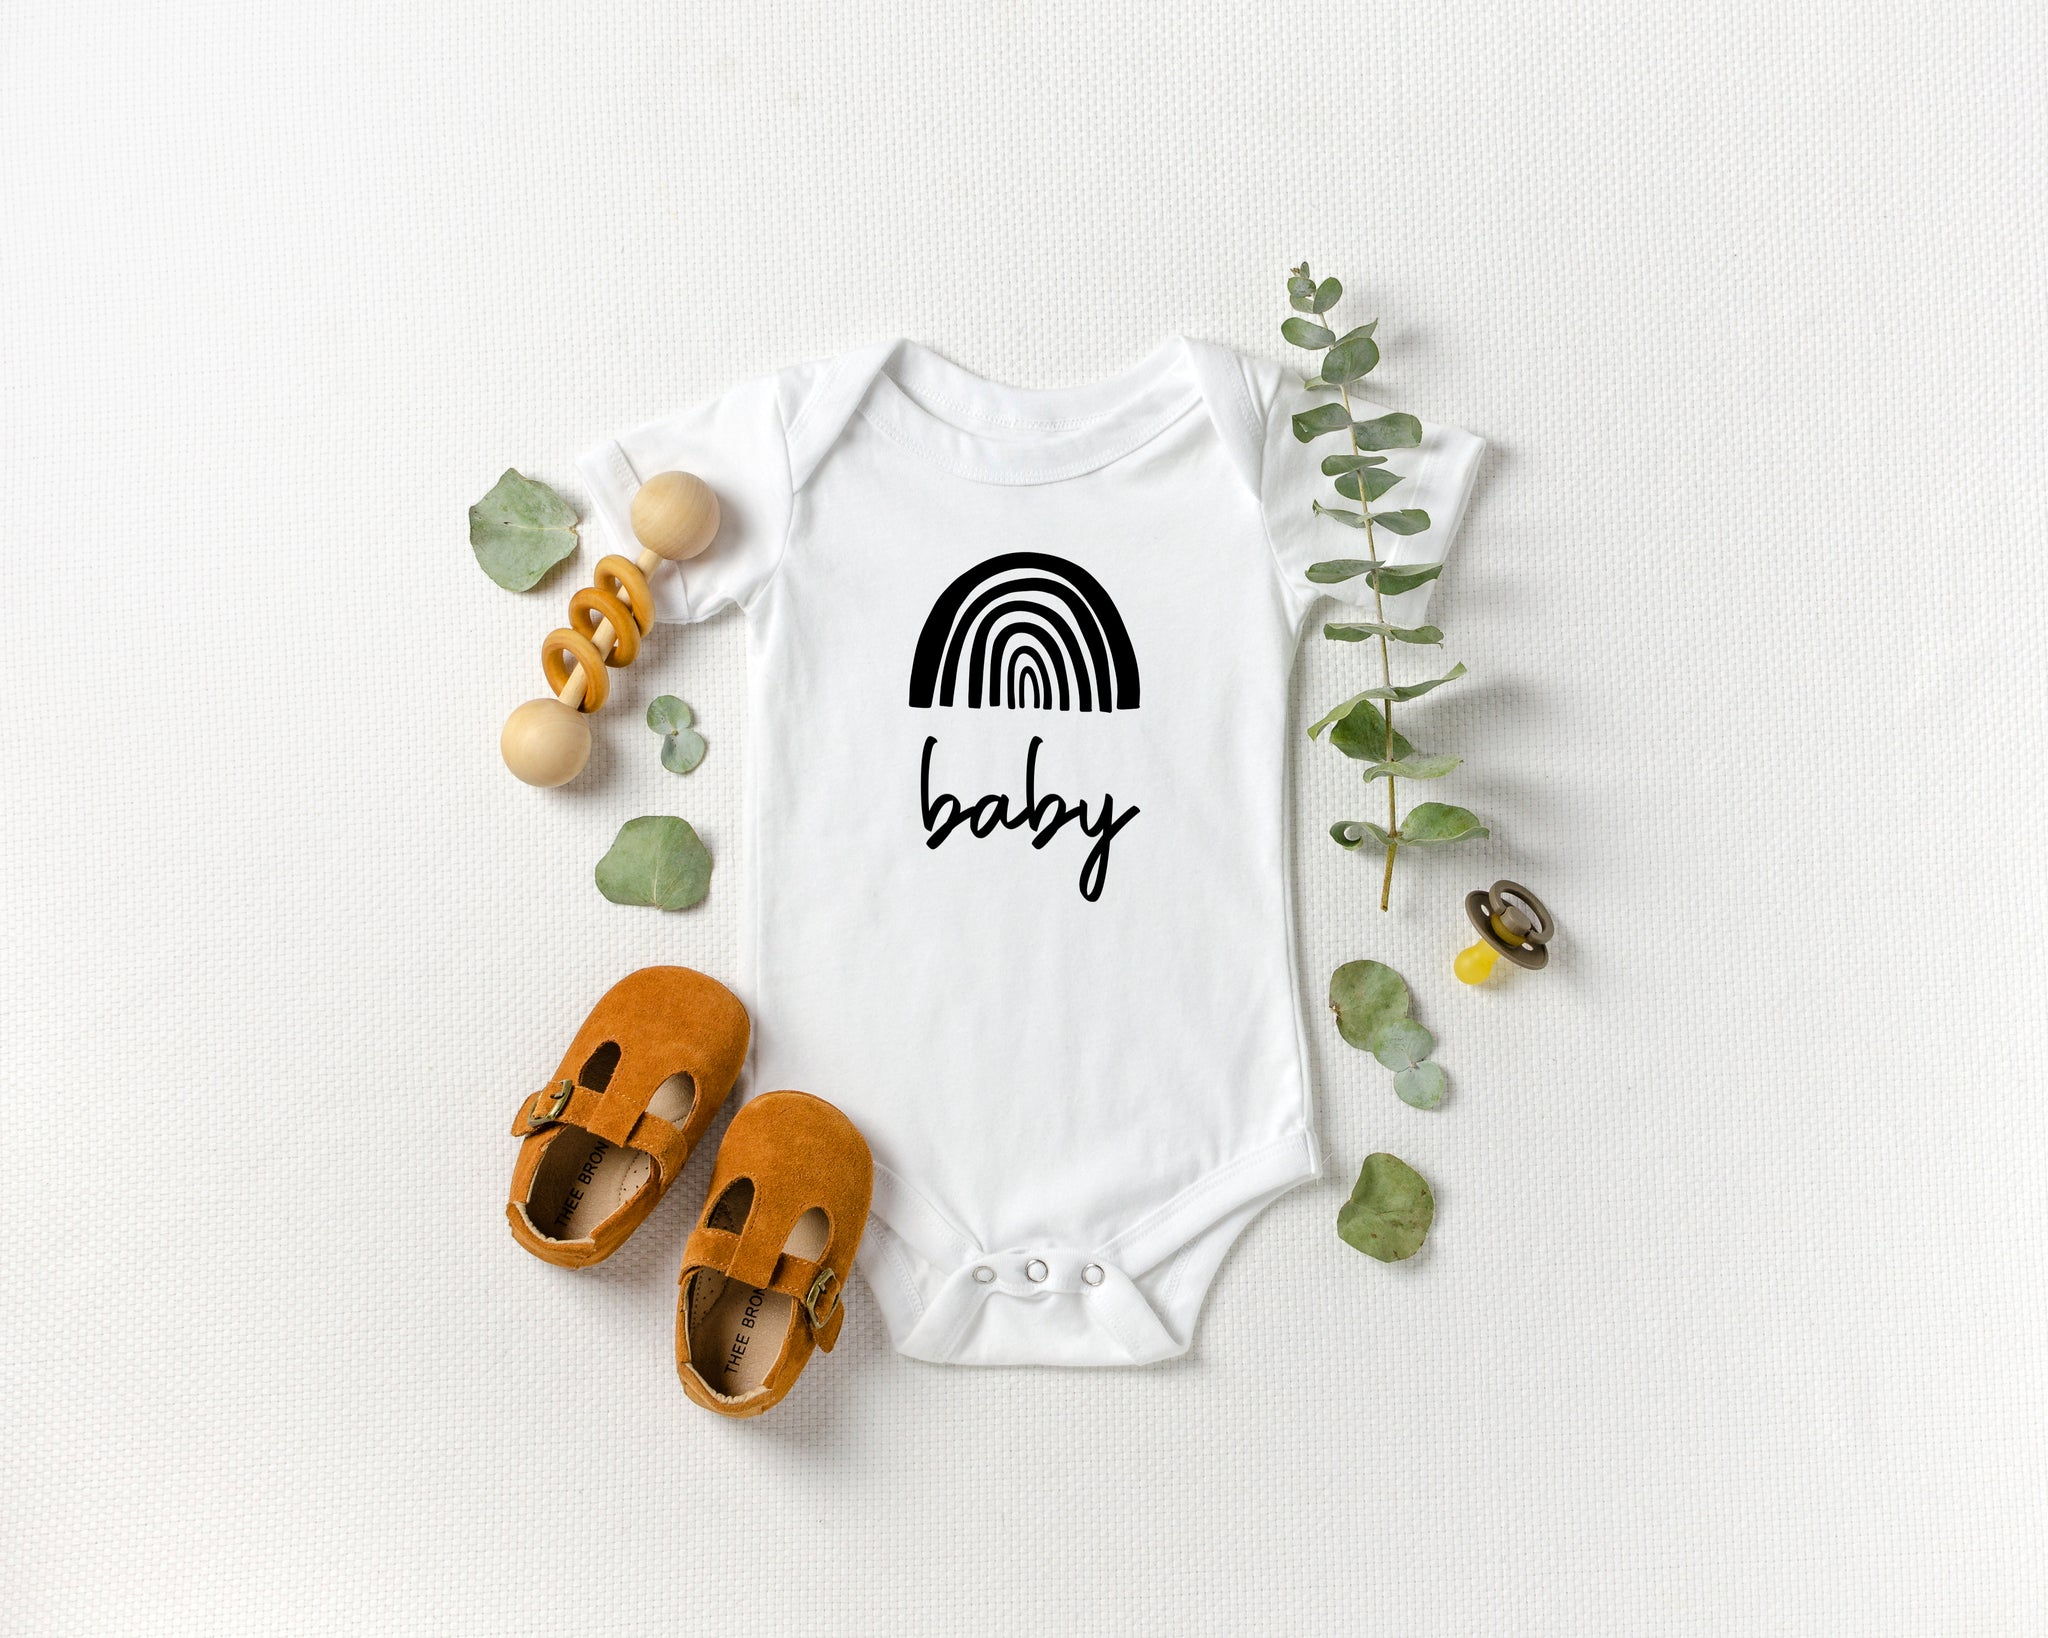 Rainbow Baby - Nine 16 Designs